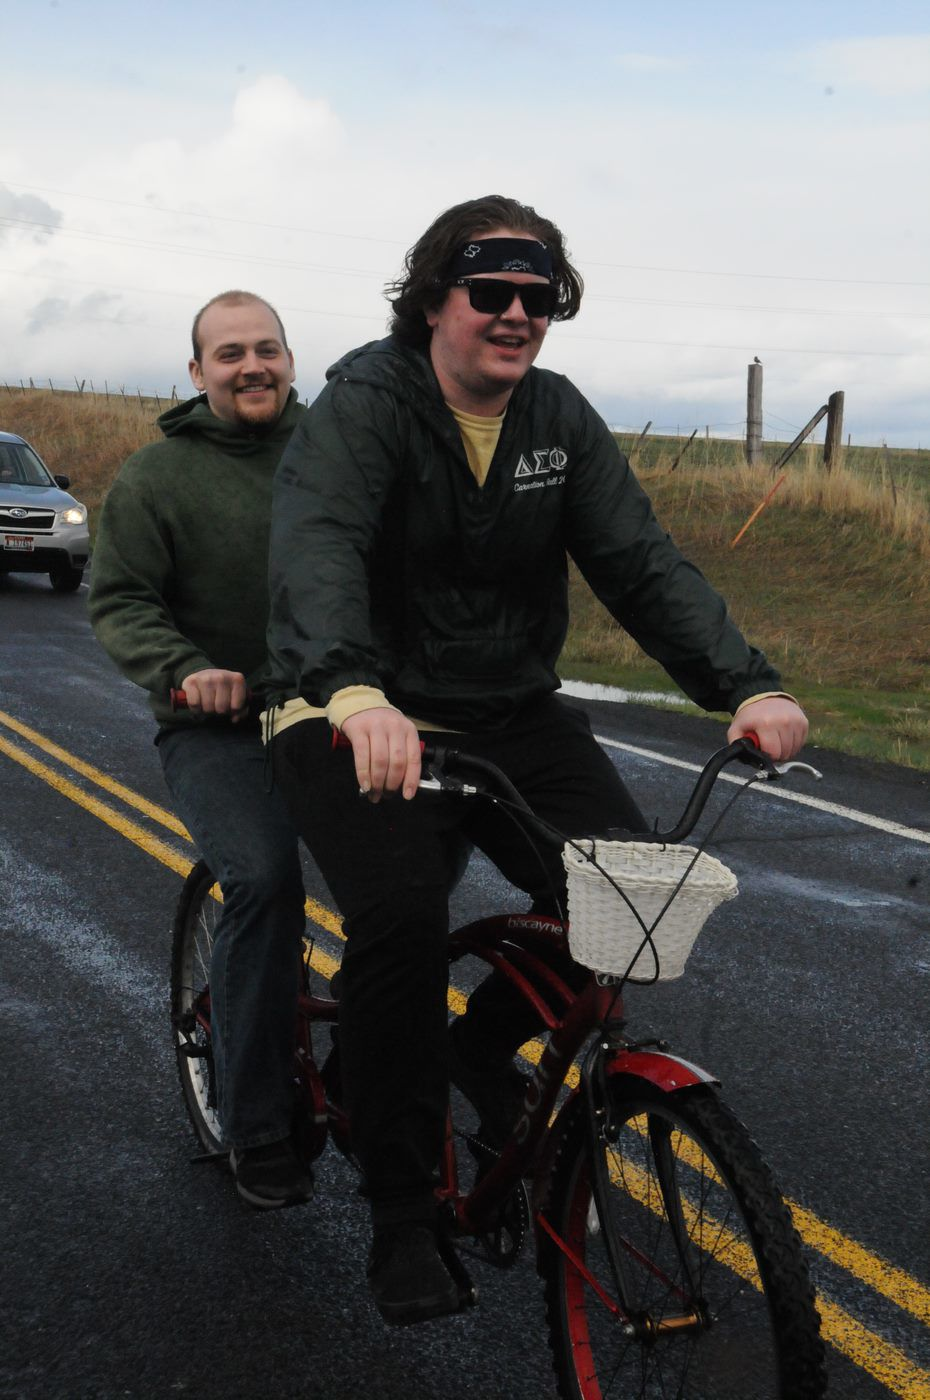 Fraternity brothers 'Bike to Boise' in support of children's home